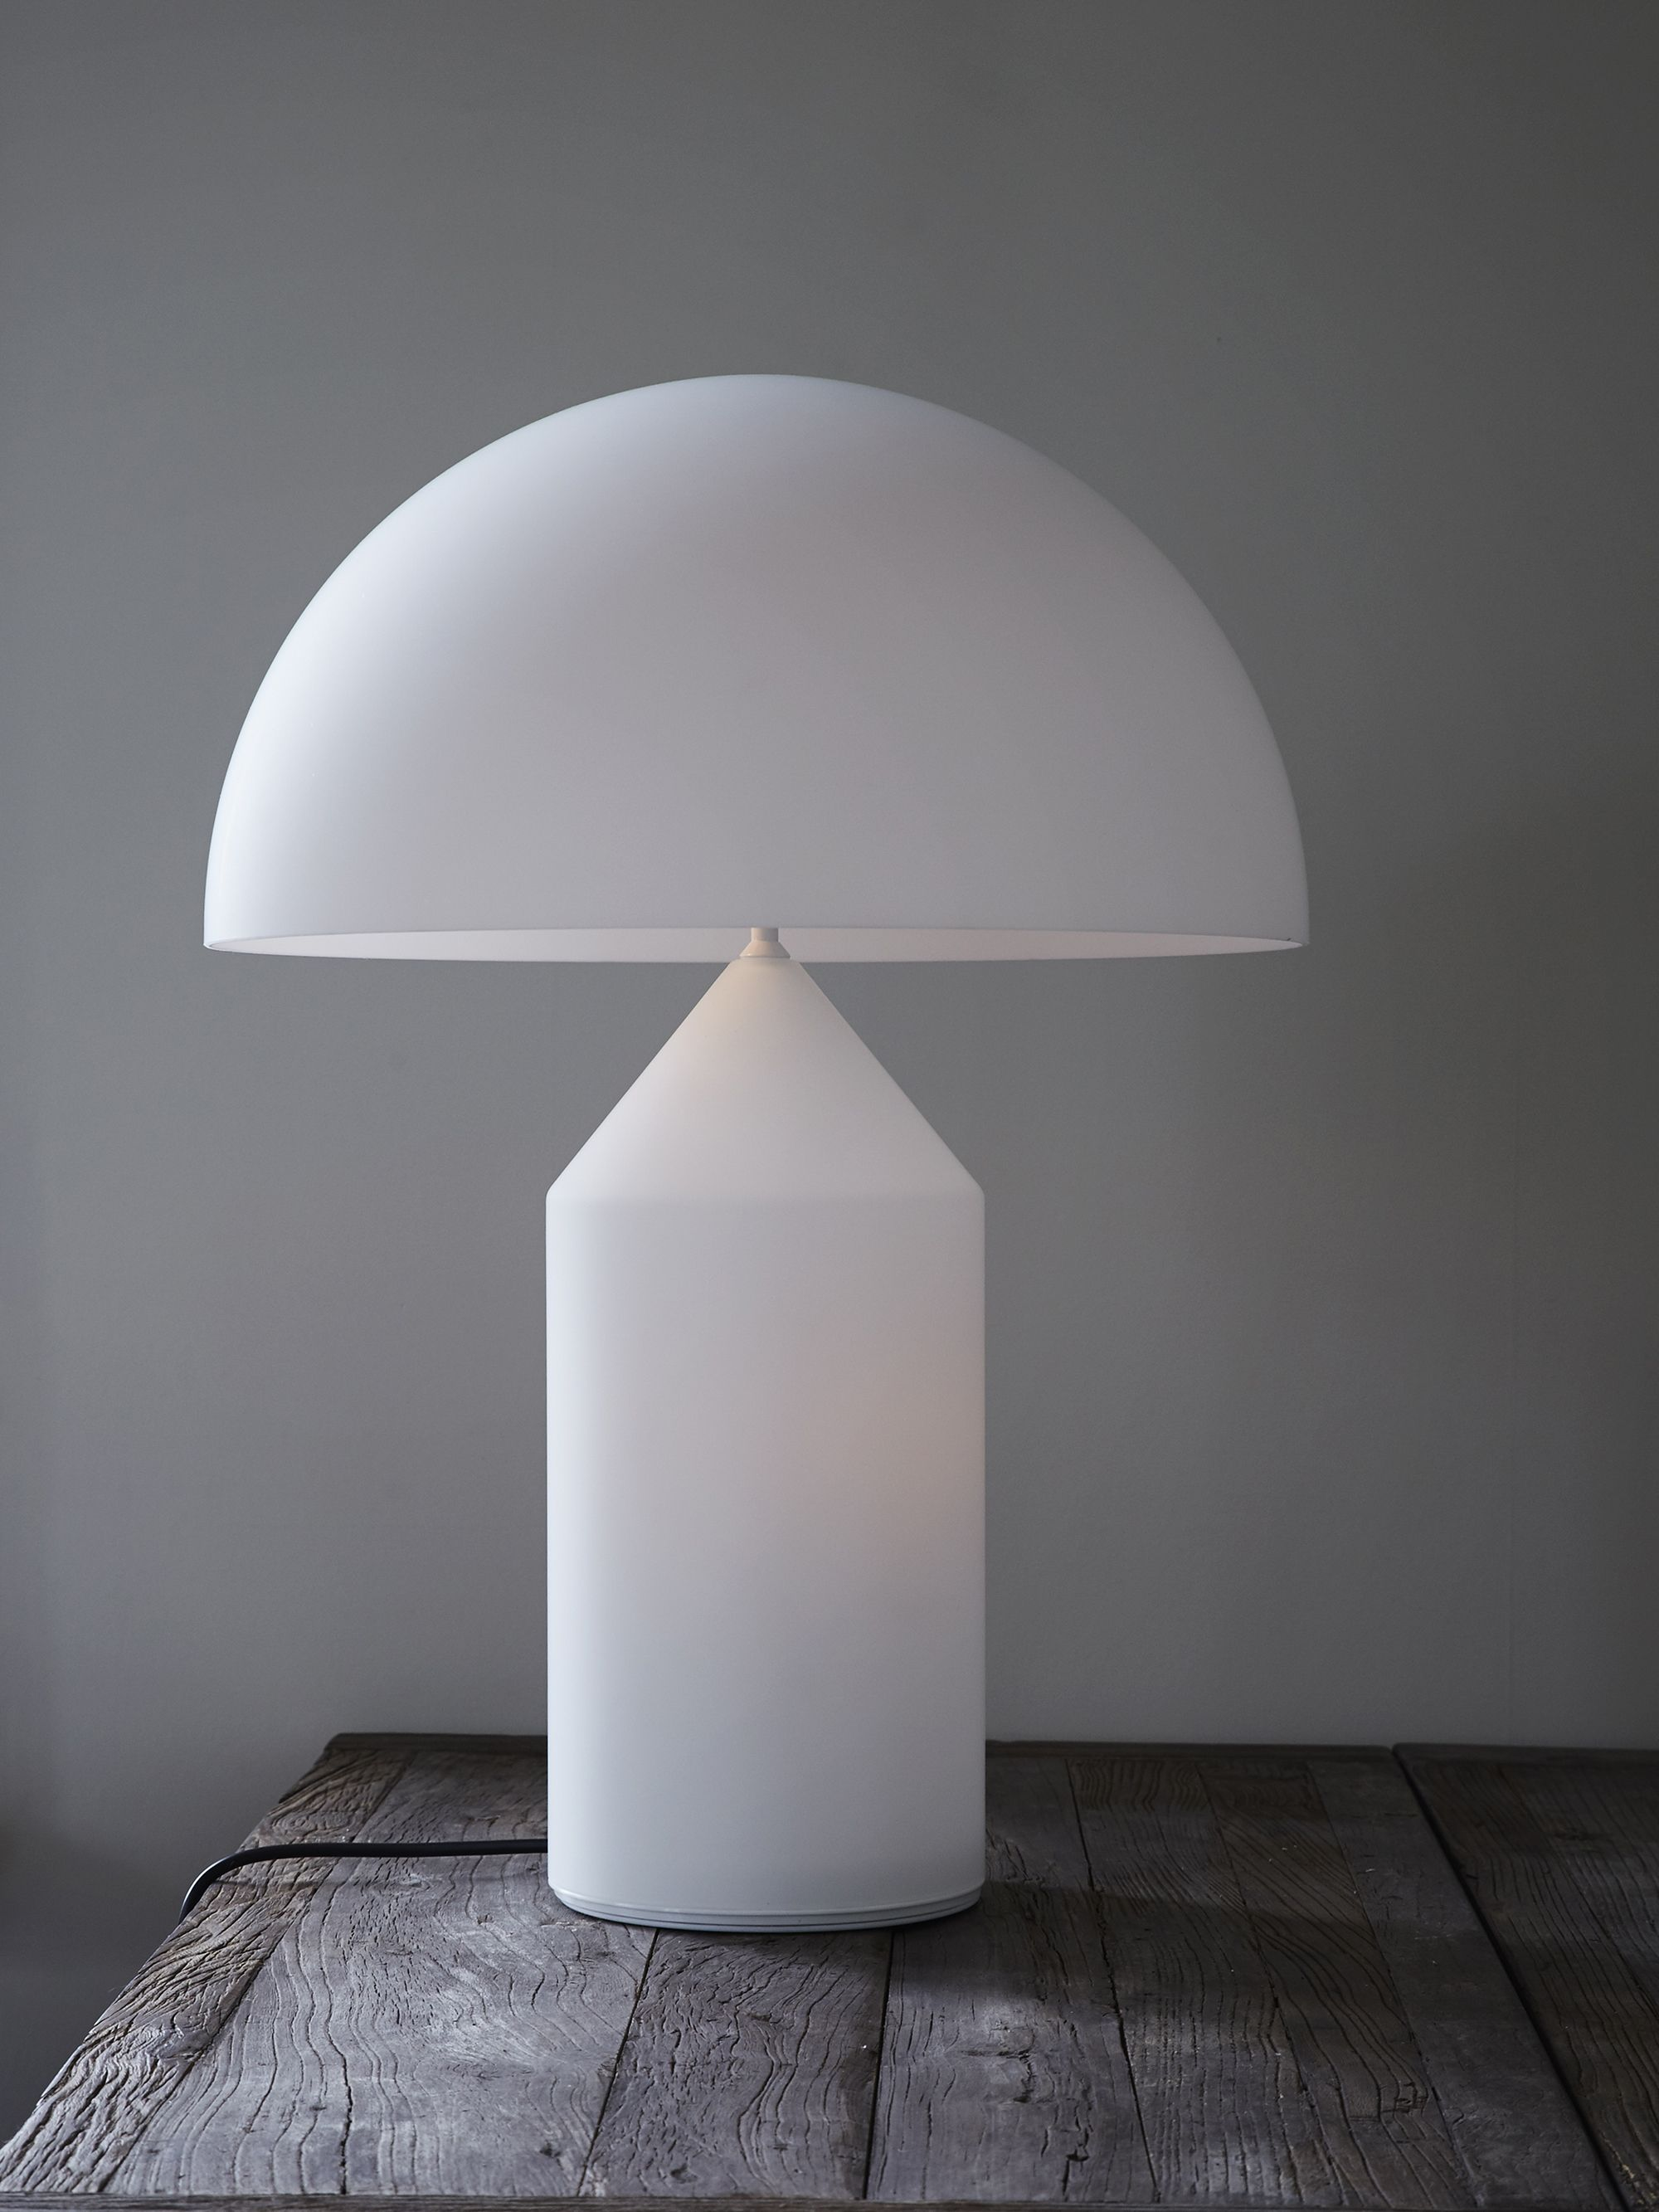 Atollo table 235 great products pinterest lights interiors atollo table 235 designed by vico magistretti table lamp geotapseo Image collections